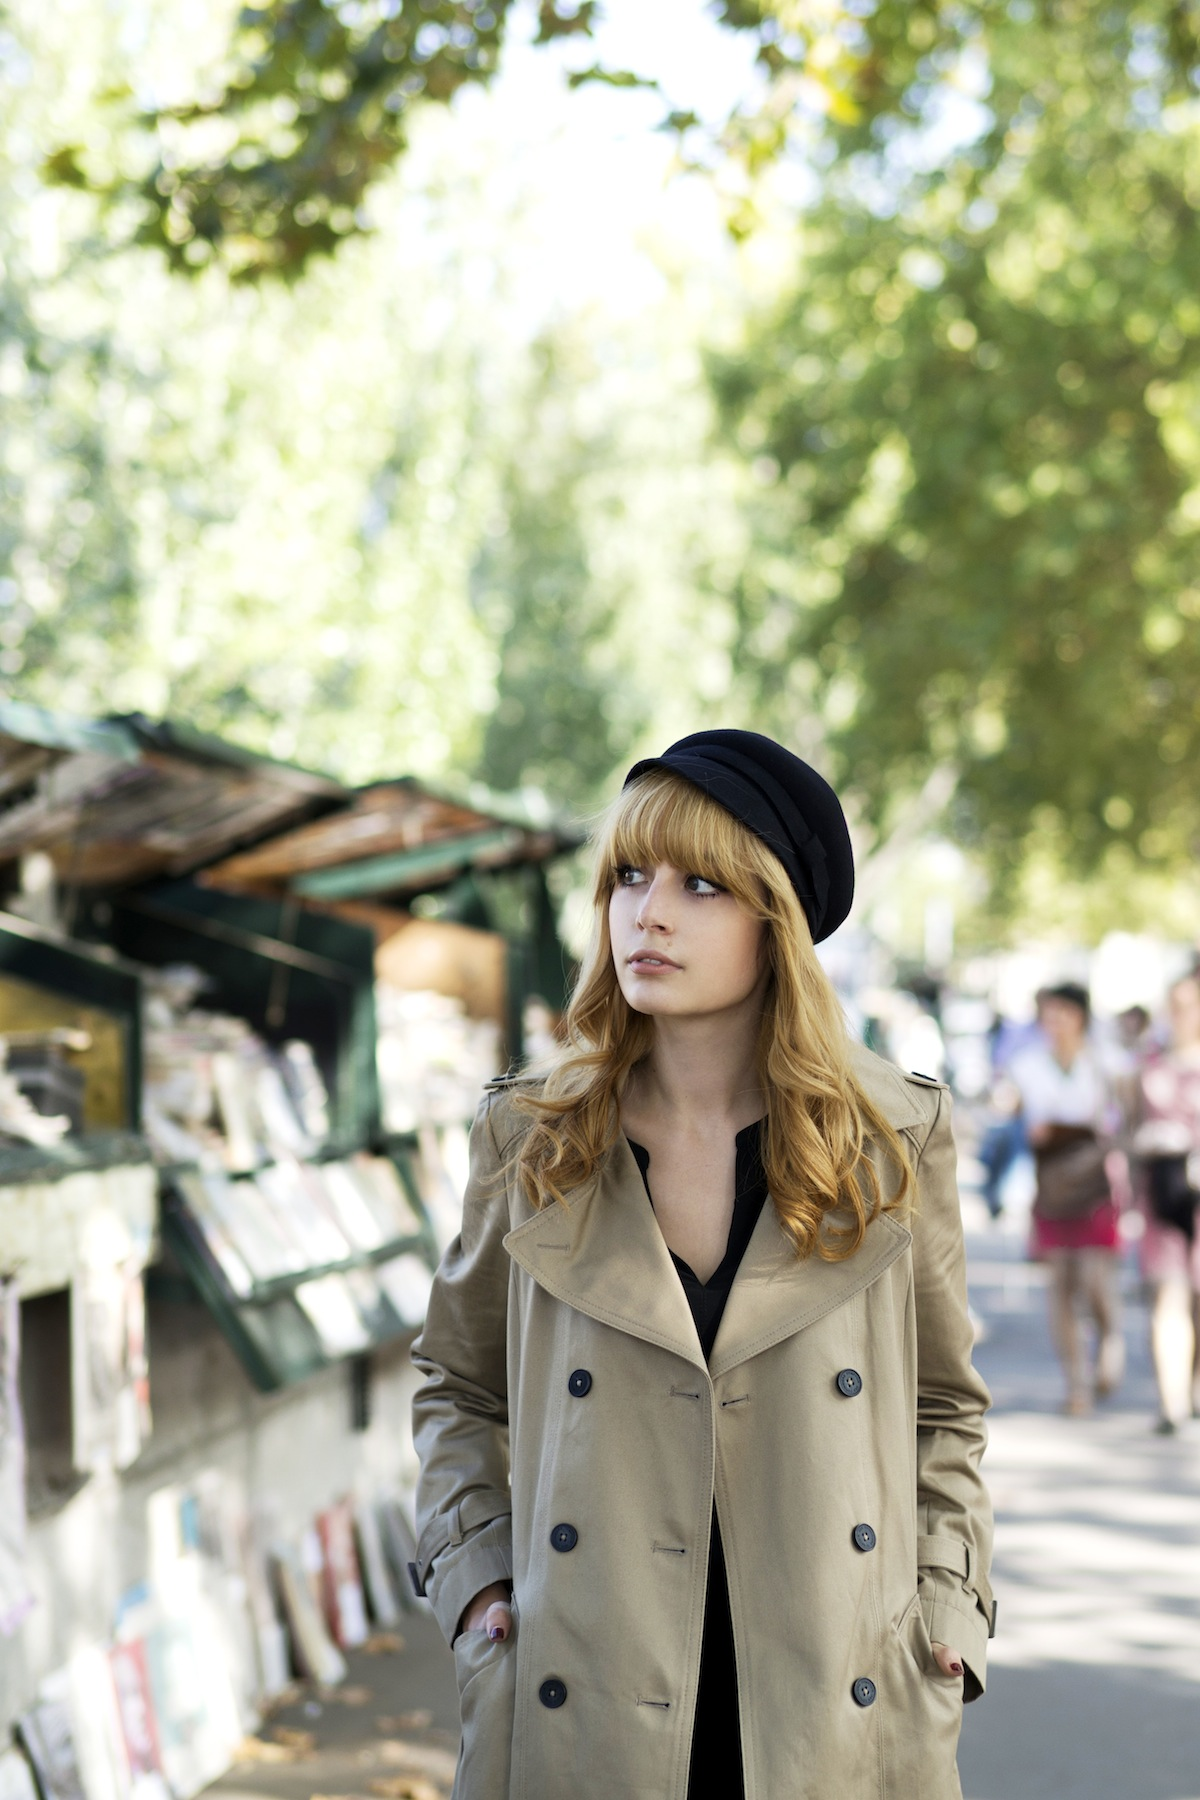 Louise Ebel is wearing a trenchcoat from Comptoir des Cotonniers and vintage beret